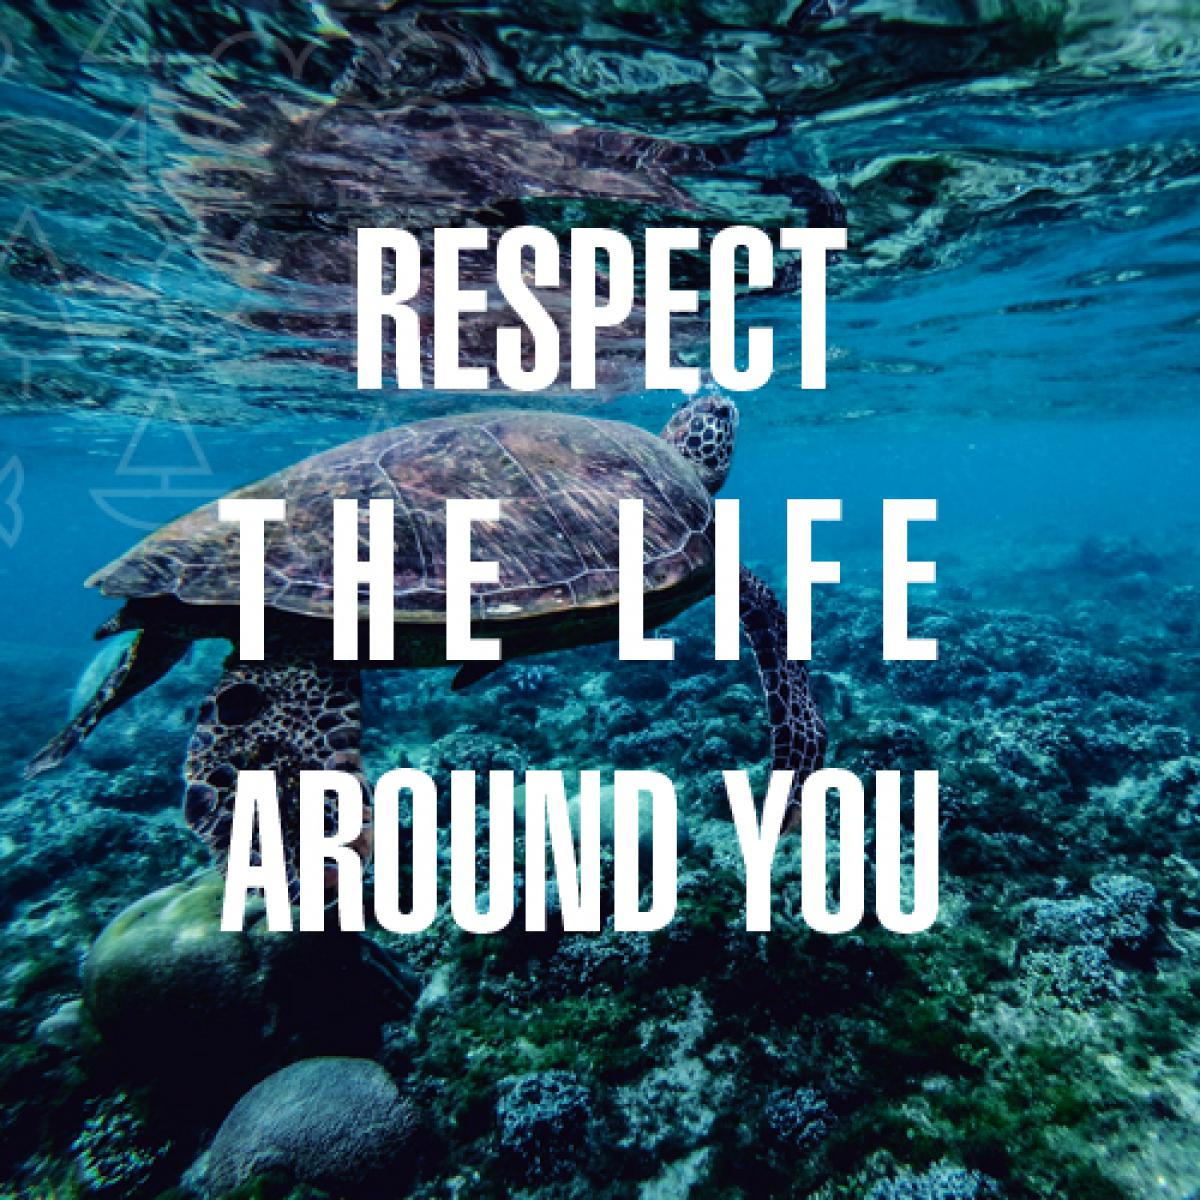 Image 0502: Earth Day tip respect the life around you